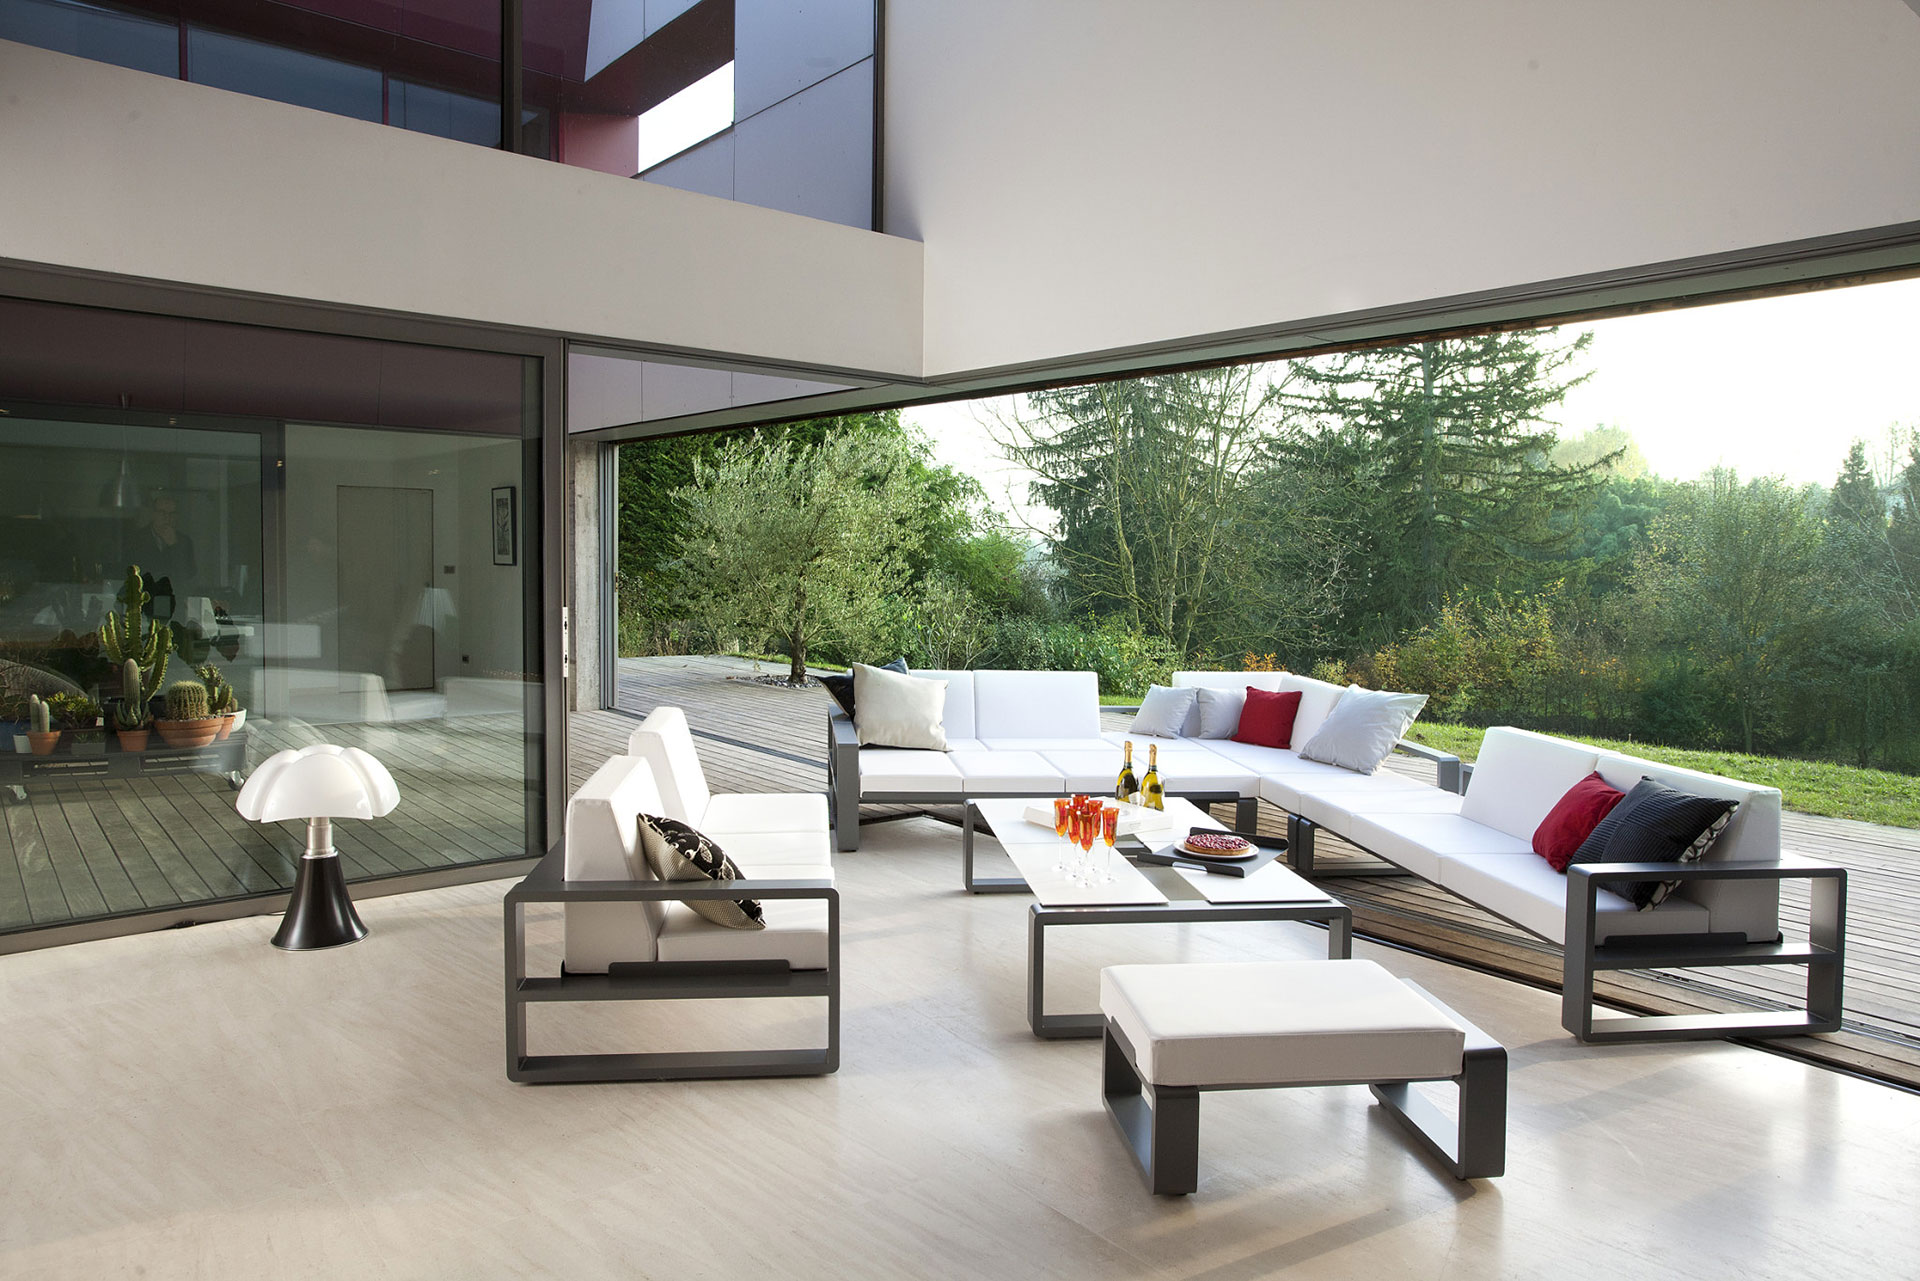 Exceptional Modern Patio Furniture With Red Cushions Contemporary Patio Furniture Set